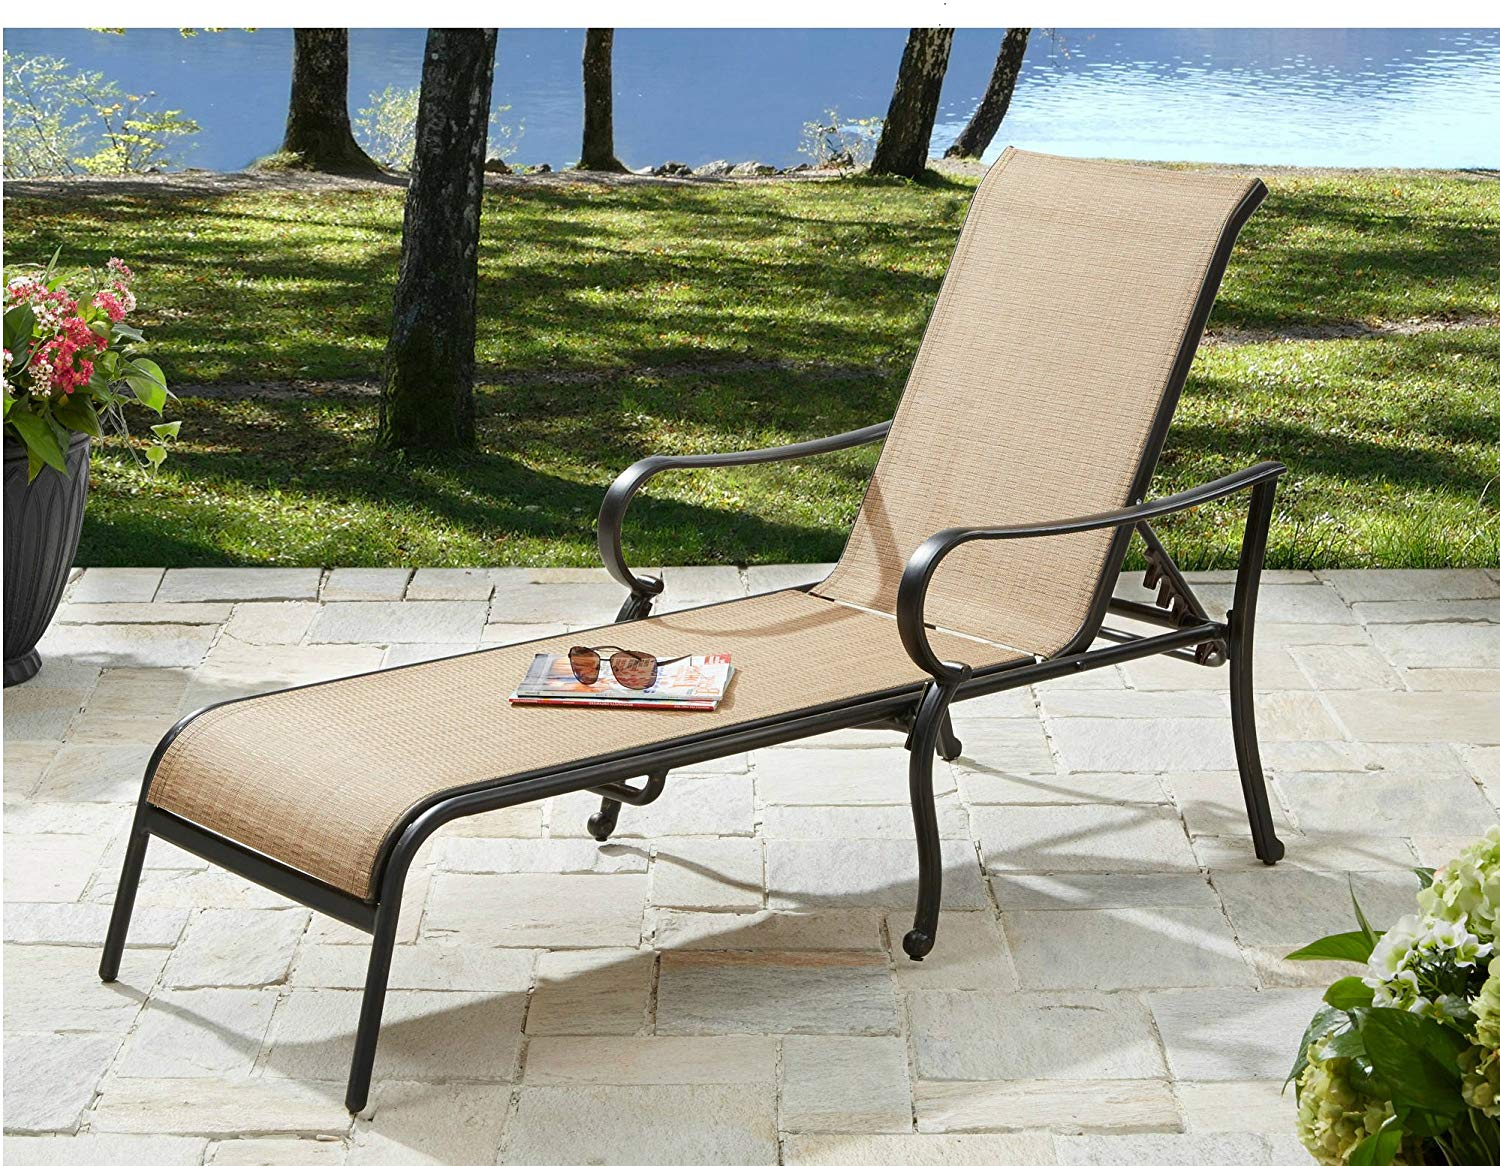 Outdoor Chaise Lounge Chair Patio Pool Furniture Clearance Poolside Deck Lounger Aluminum Frame Sling Fabric